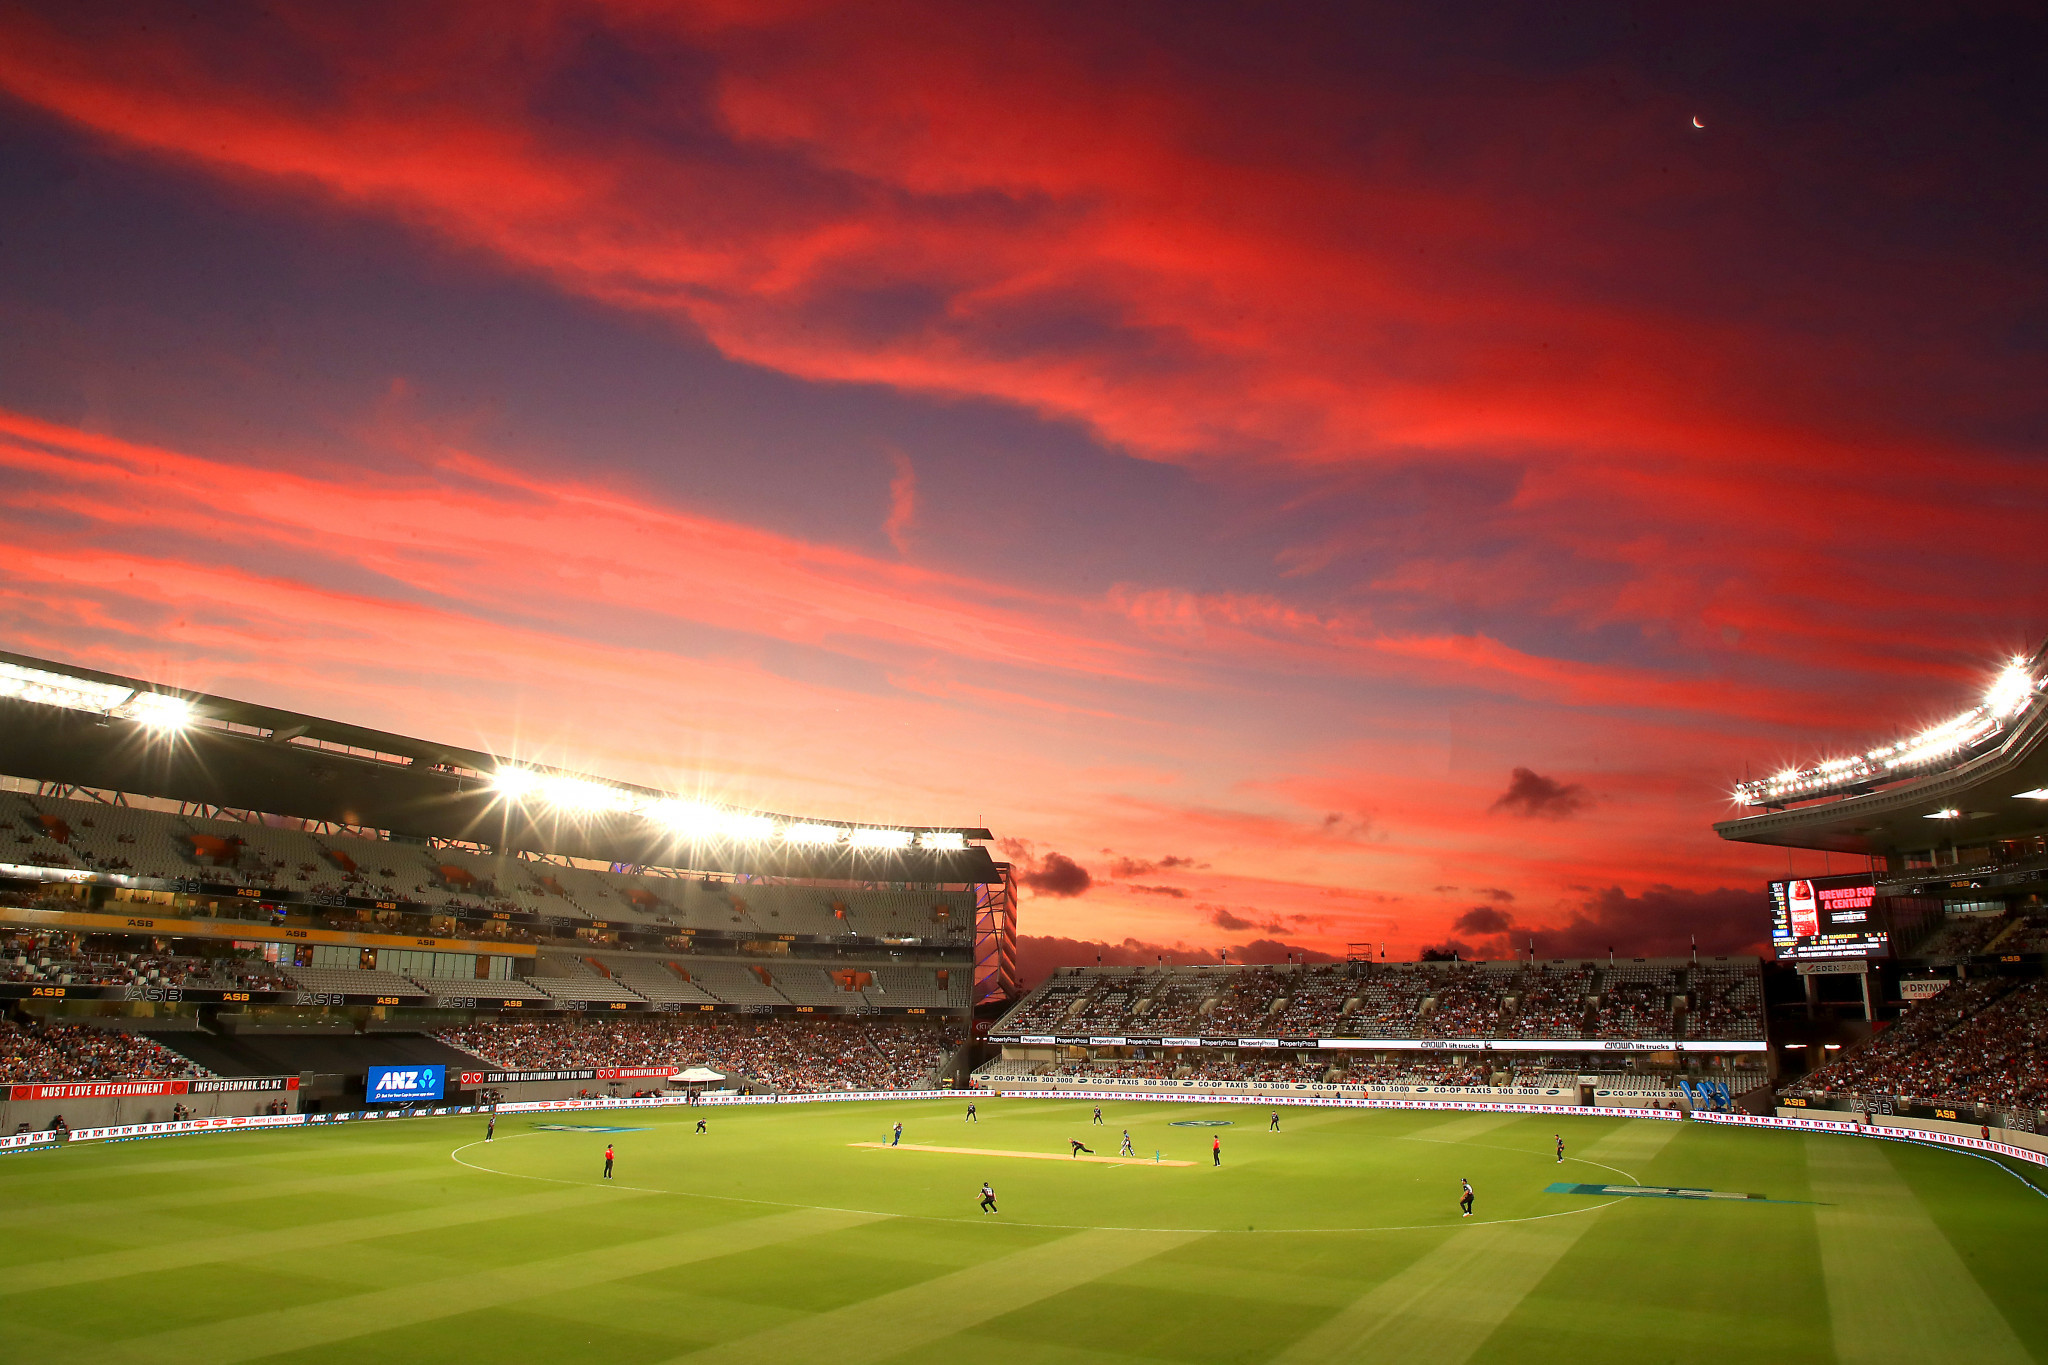 Auckland's Eden Park will stage a